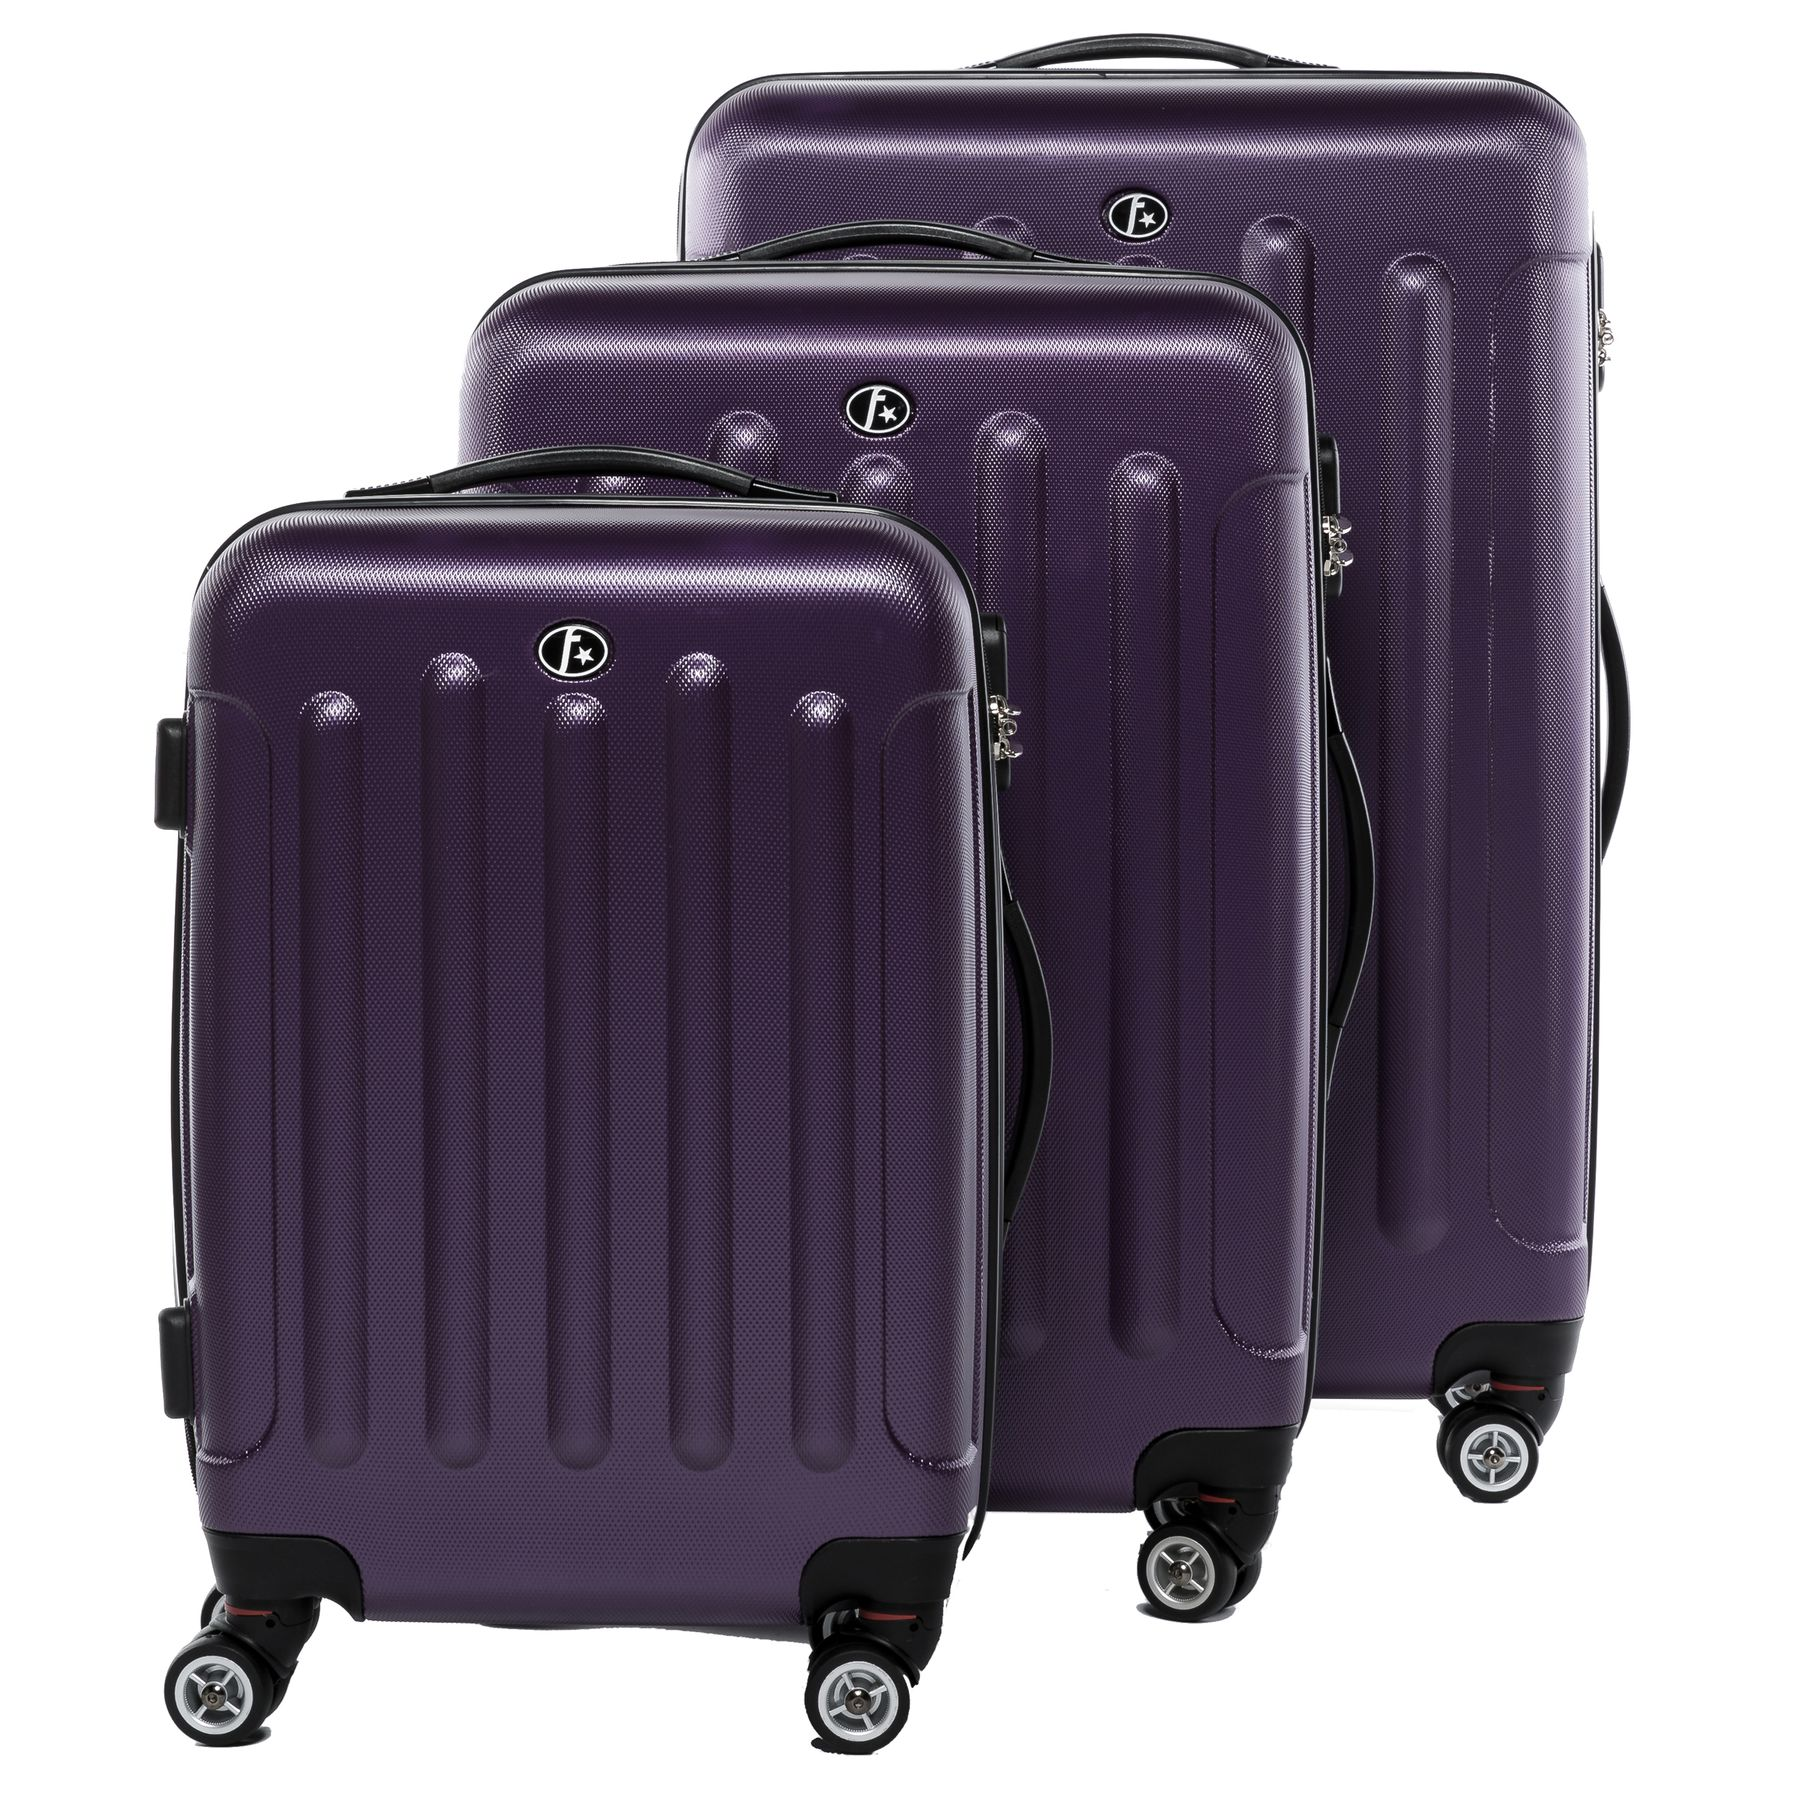 da0947469392 FERGÉ luggage set 3 piece ABS LYON purple hard shell travel trolley  suitcase set 4 twin spinner wheels Luggage